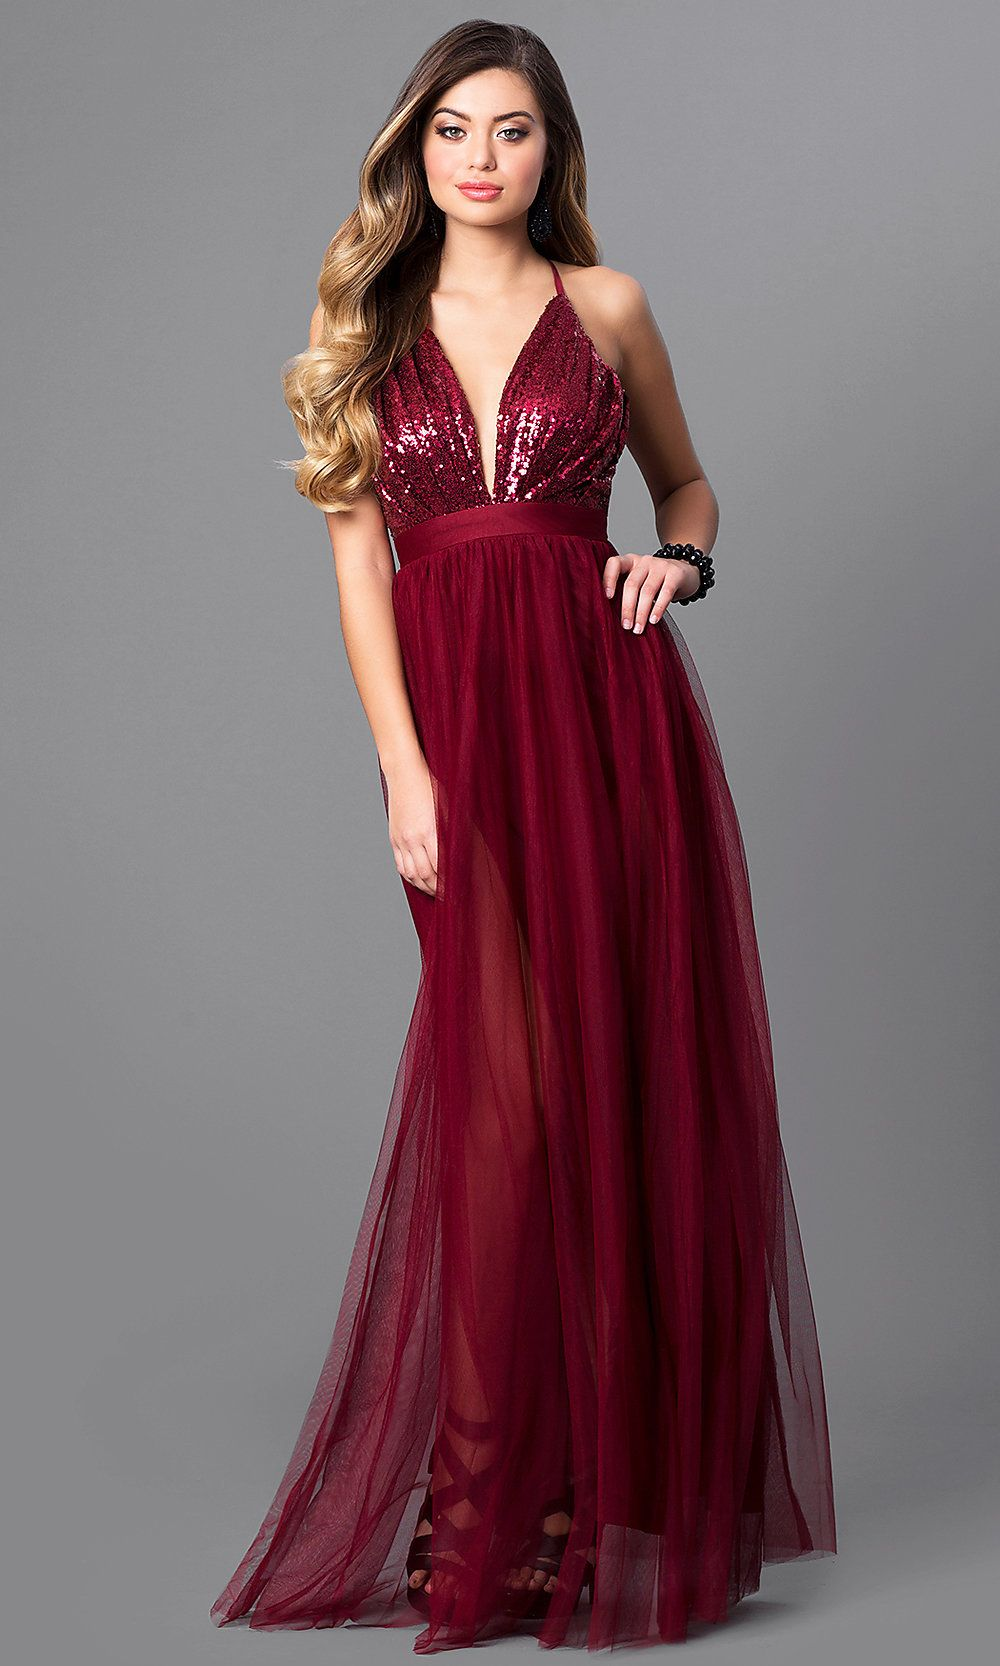 c43ddbe91802 Long V-Neck Tulle Prom Dress with Empire Waist in 2019 | prom | Prom ...